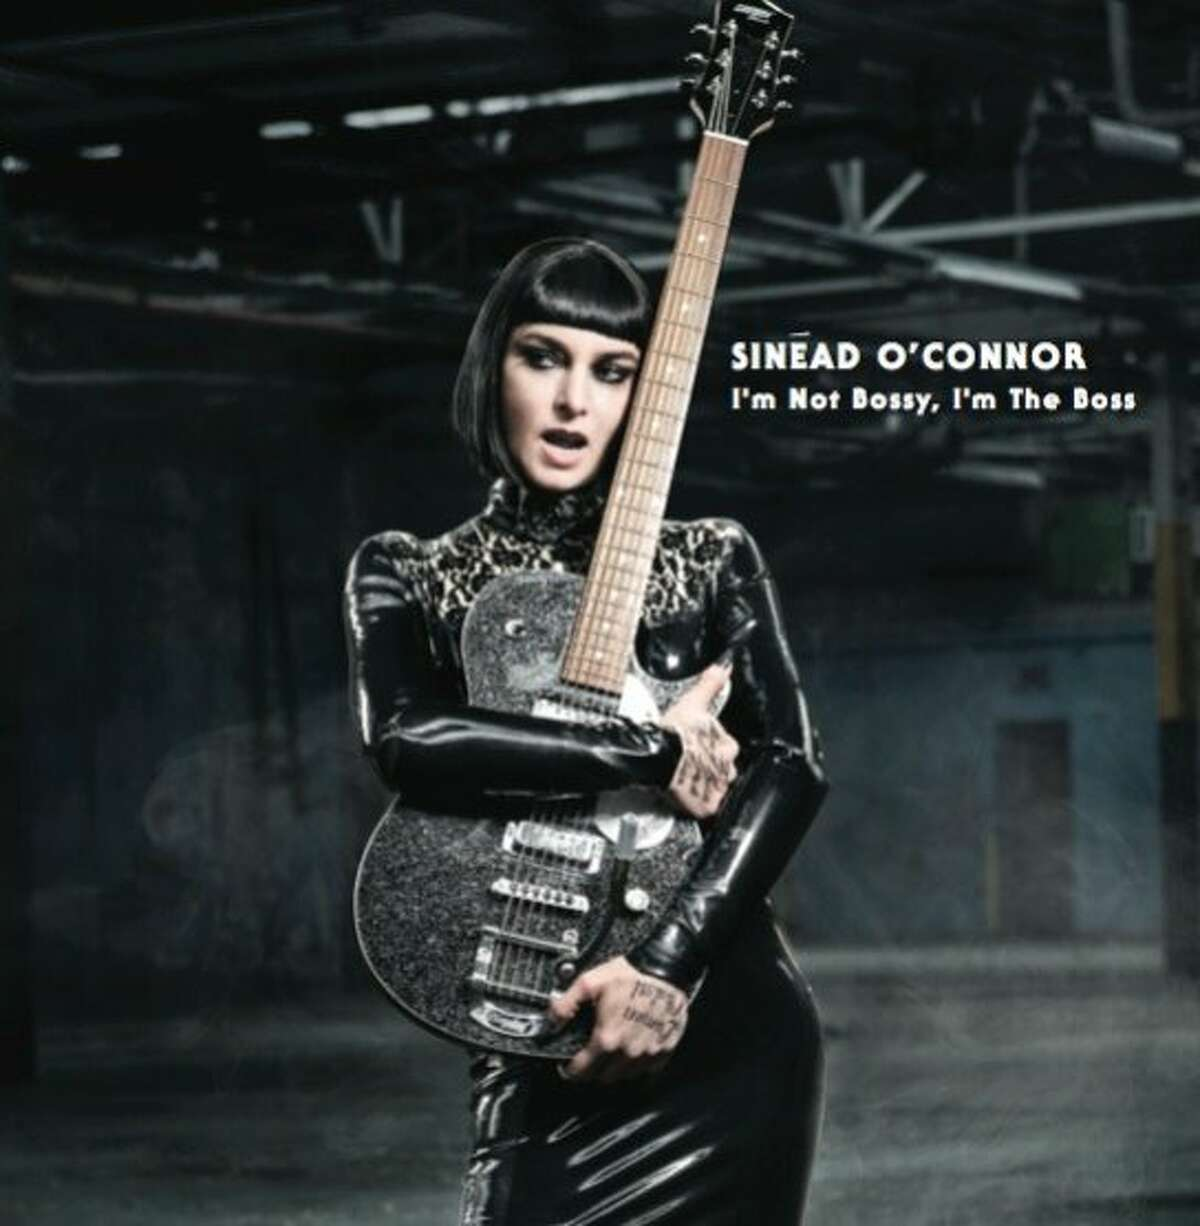 Sinead O'Connor, 'I'm Not Bossy, I'm The Boss'